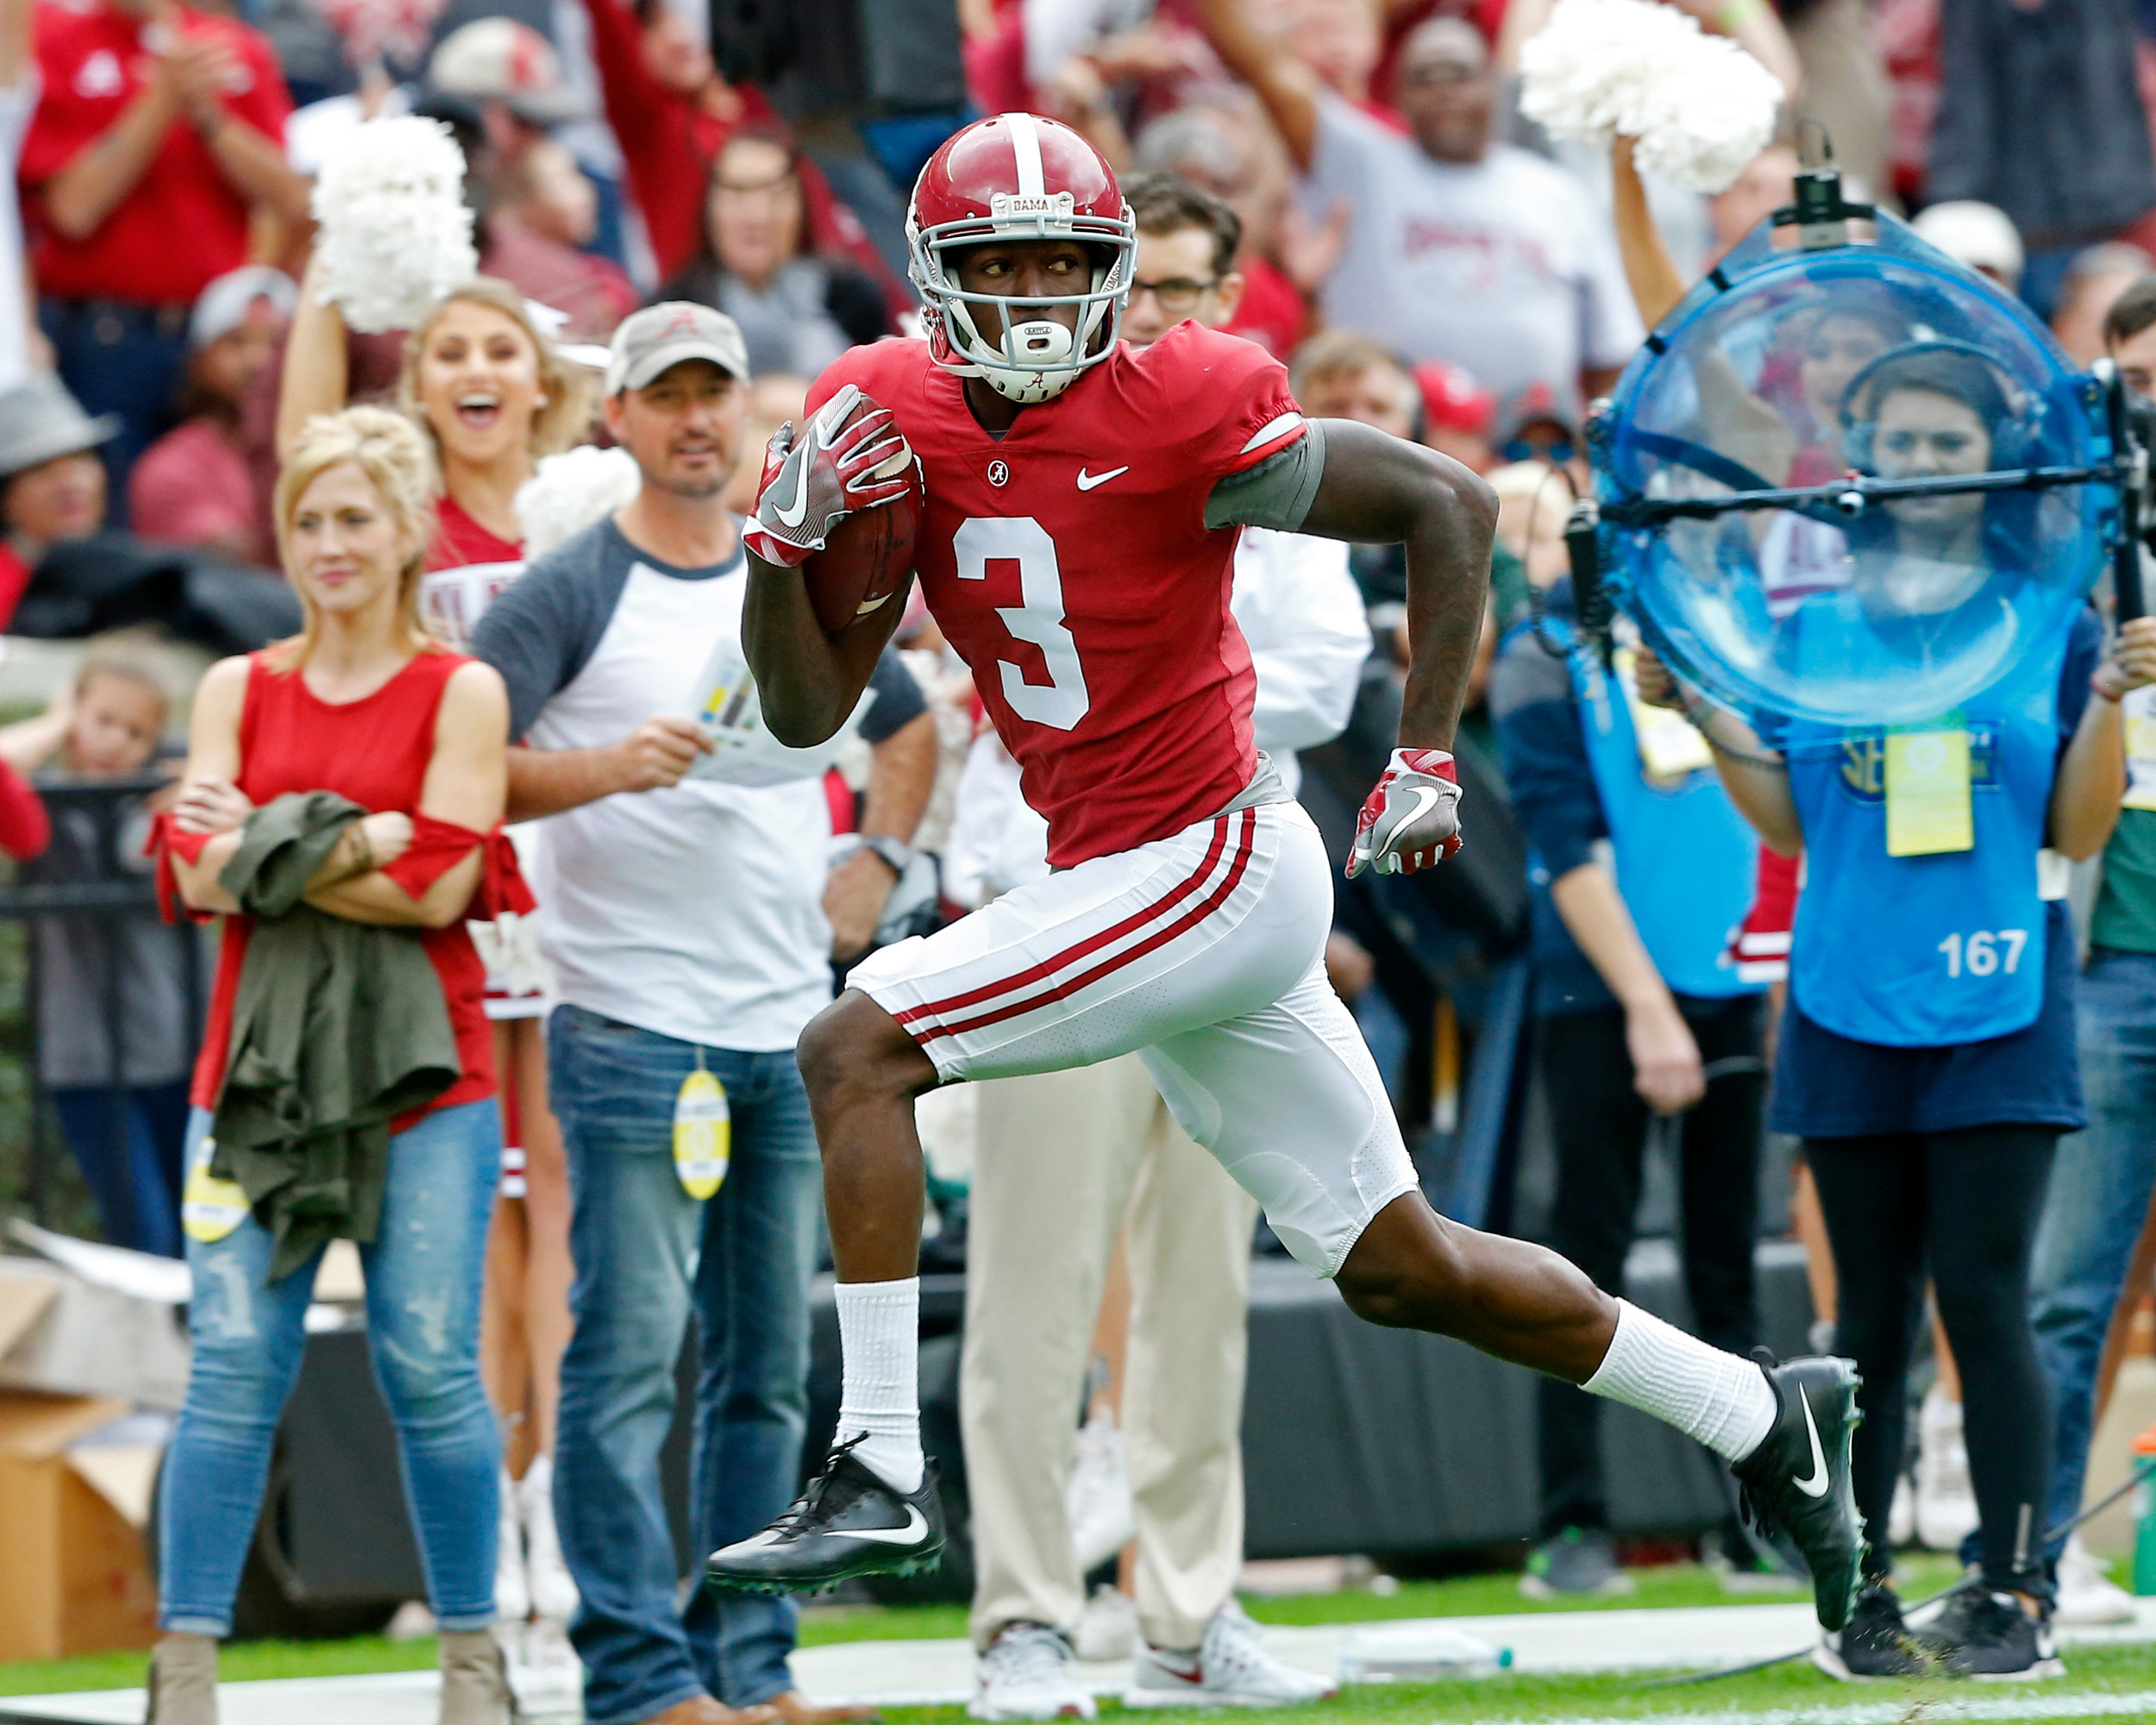 Alabama Crimson Tide wide receiver Calvin Ridley (3) heads for the end zone after pulling in a pass during the 1st half of the game between the Mercer Bears and the University of Alabama Crimson Tide at Bryant-Denny Stadium in Tuscaloosa, Al on 11/18/2017.